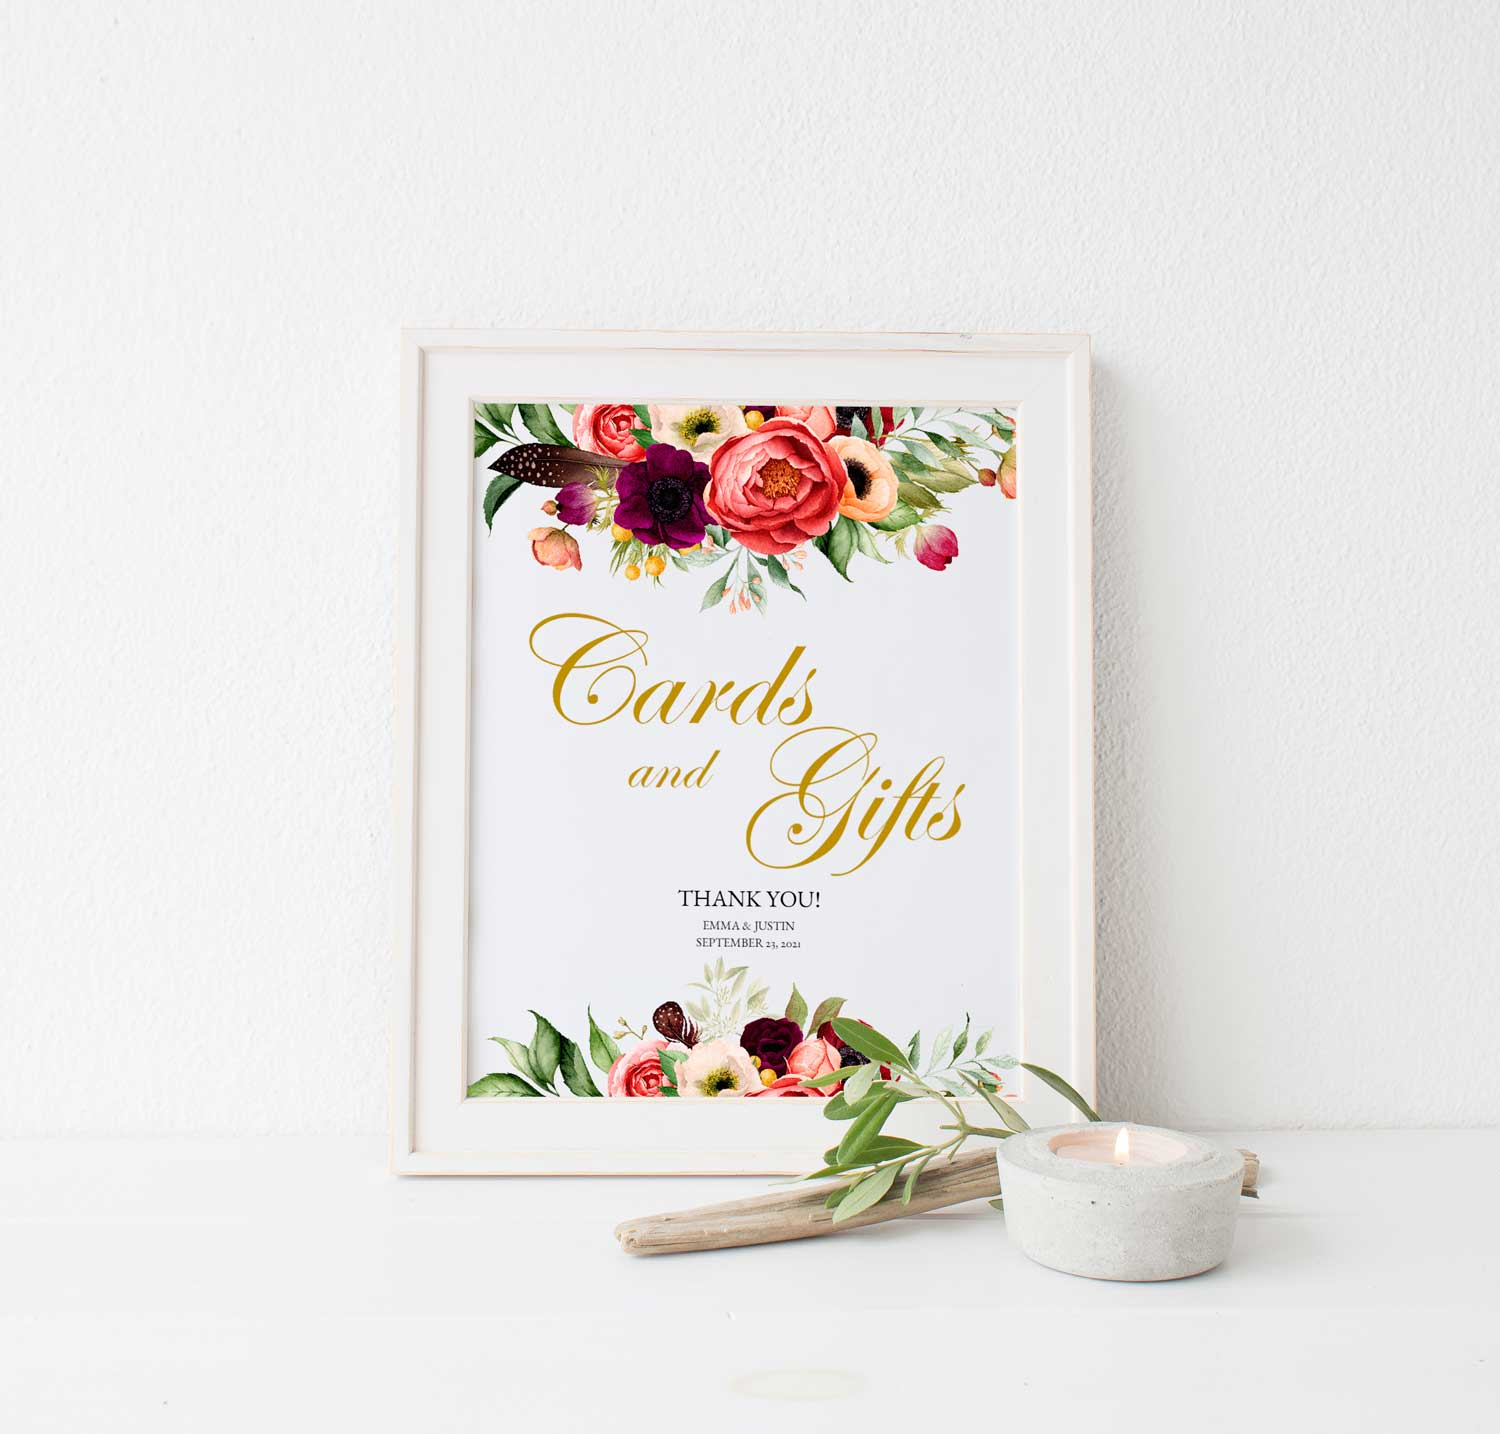 boho-beauty-cards-and-gifts-1